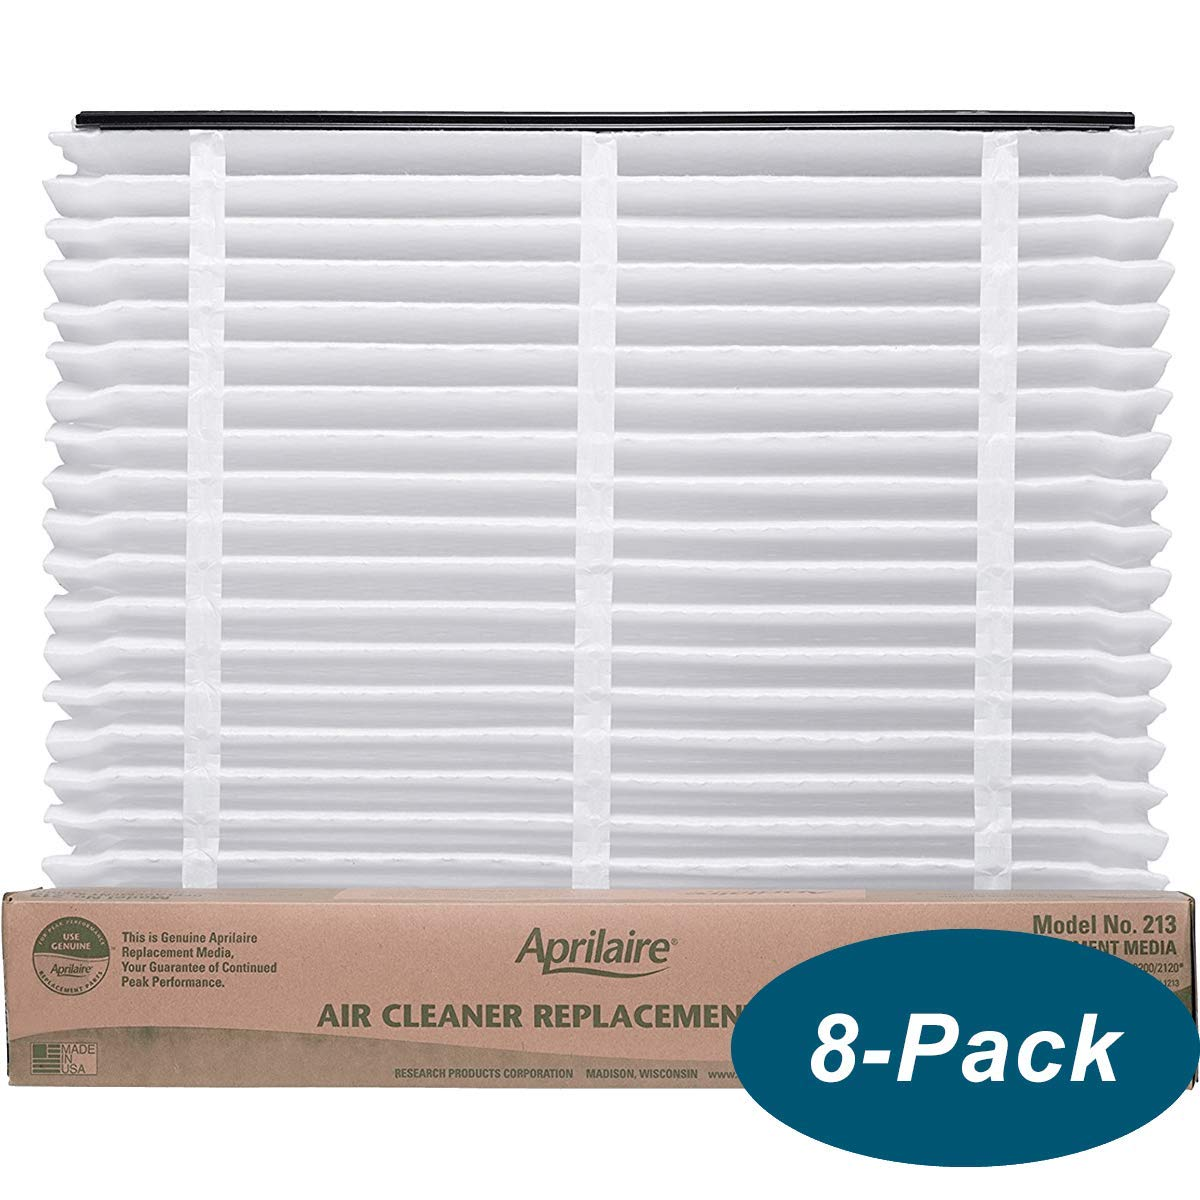 Aprilaire Filter #213 for Models 1210, 2210, 3210 and 4200-8 Pack